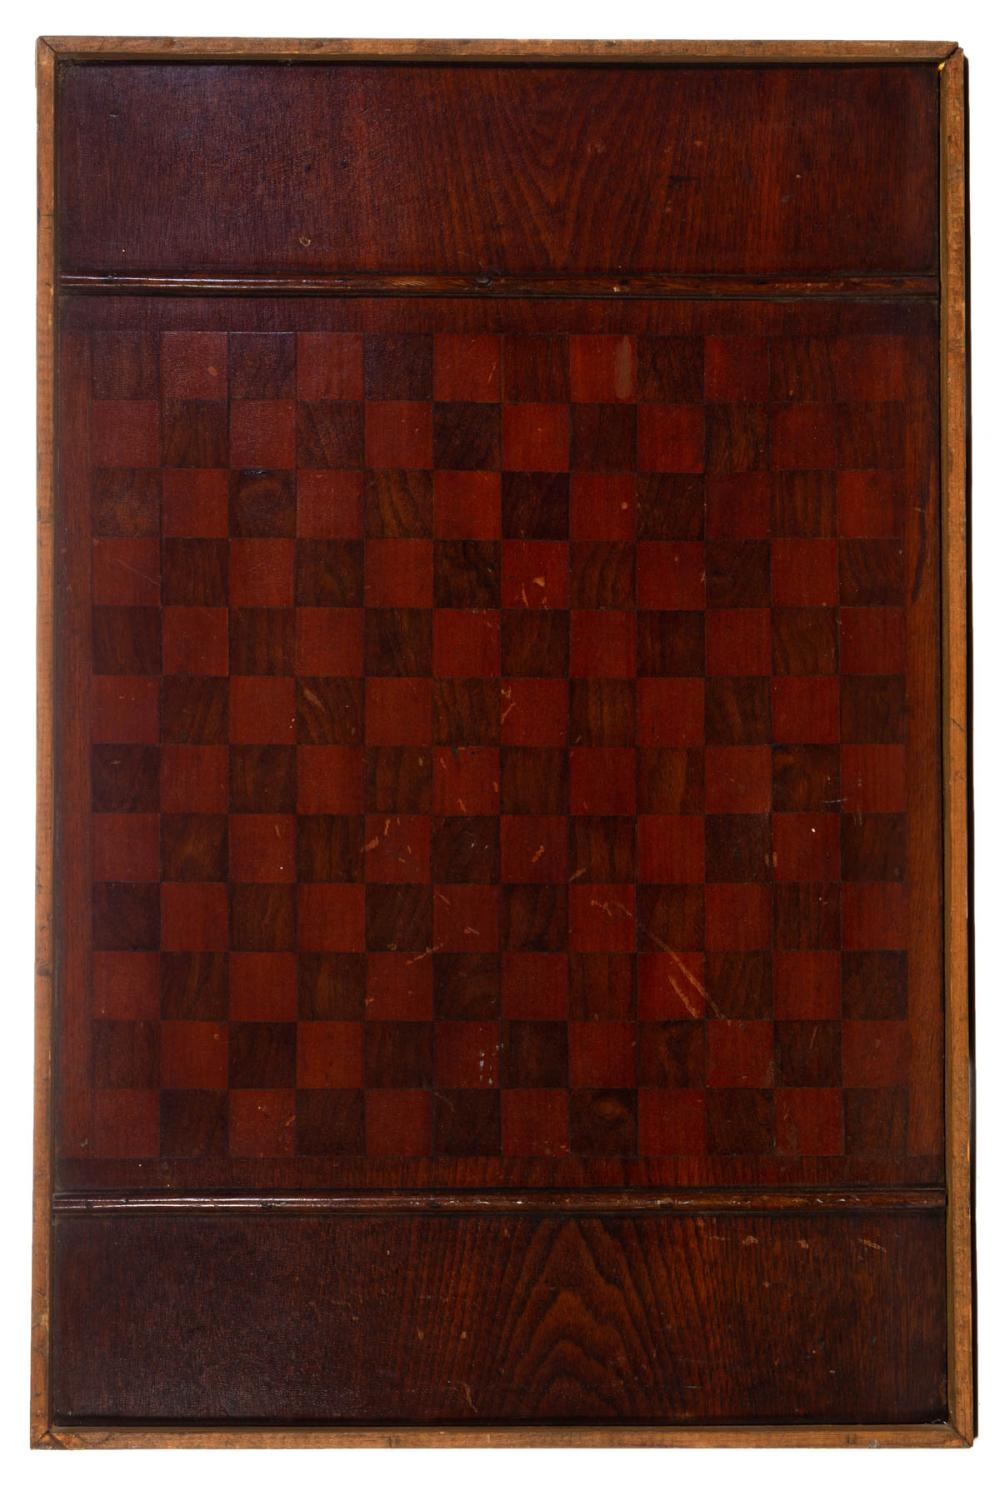 COUNTRY FOLK ART PINE GAMEBOARD